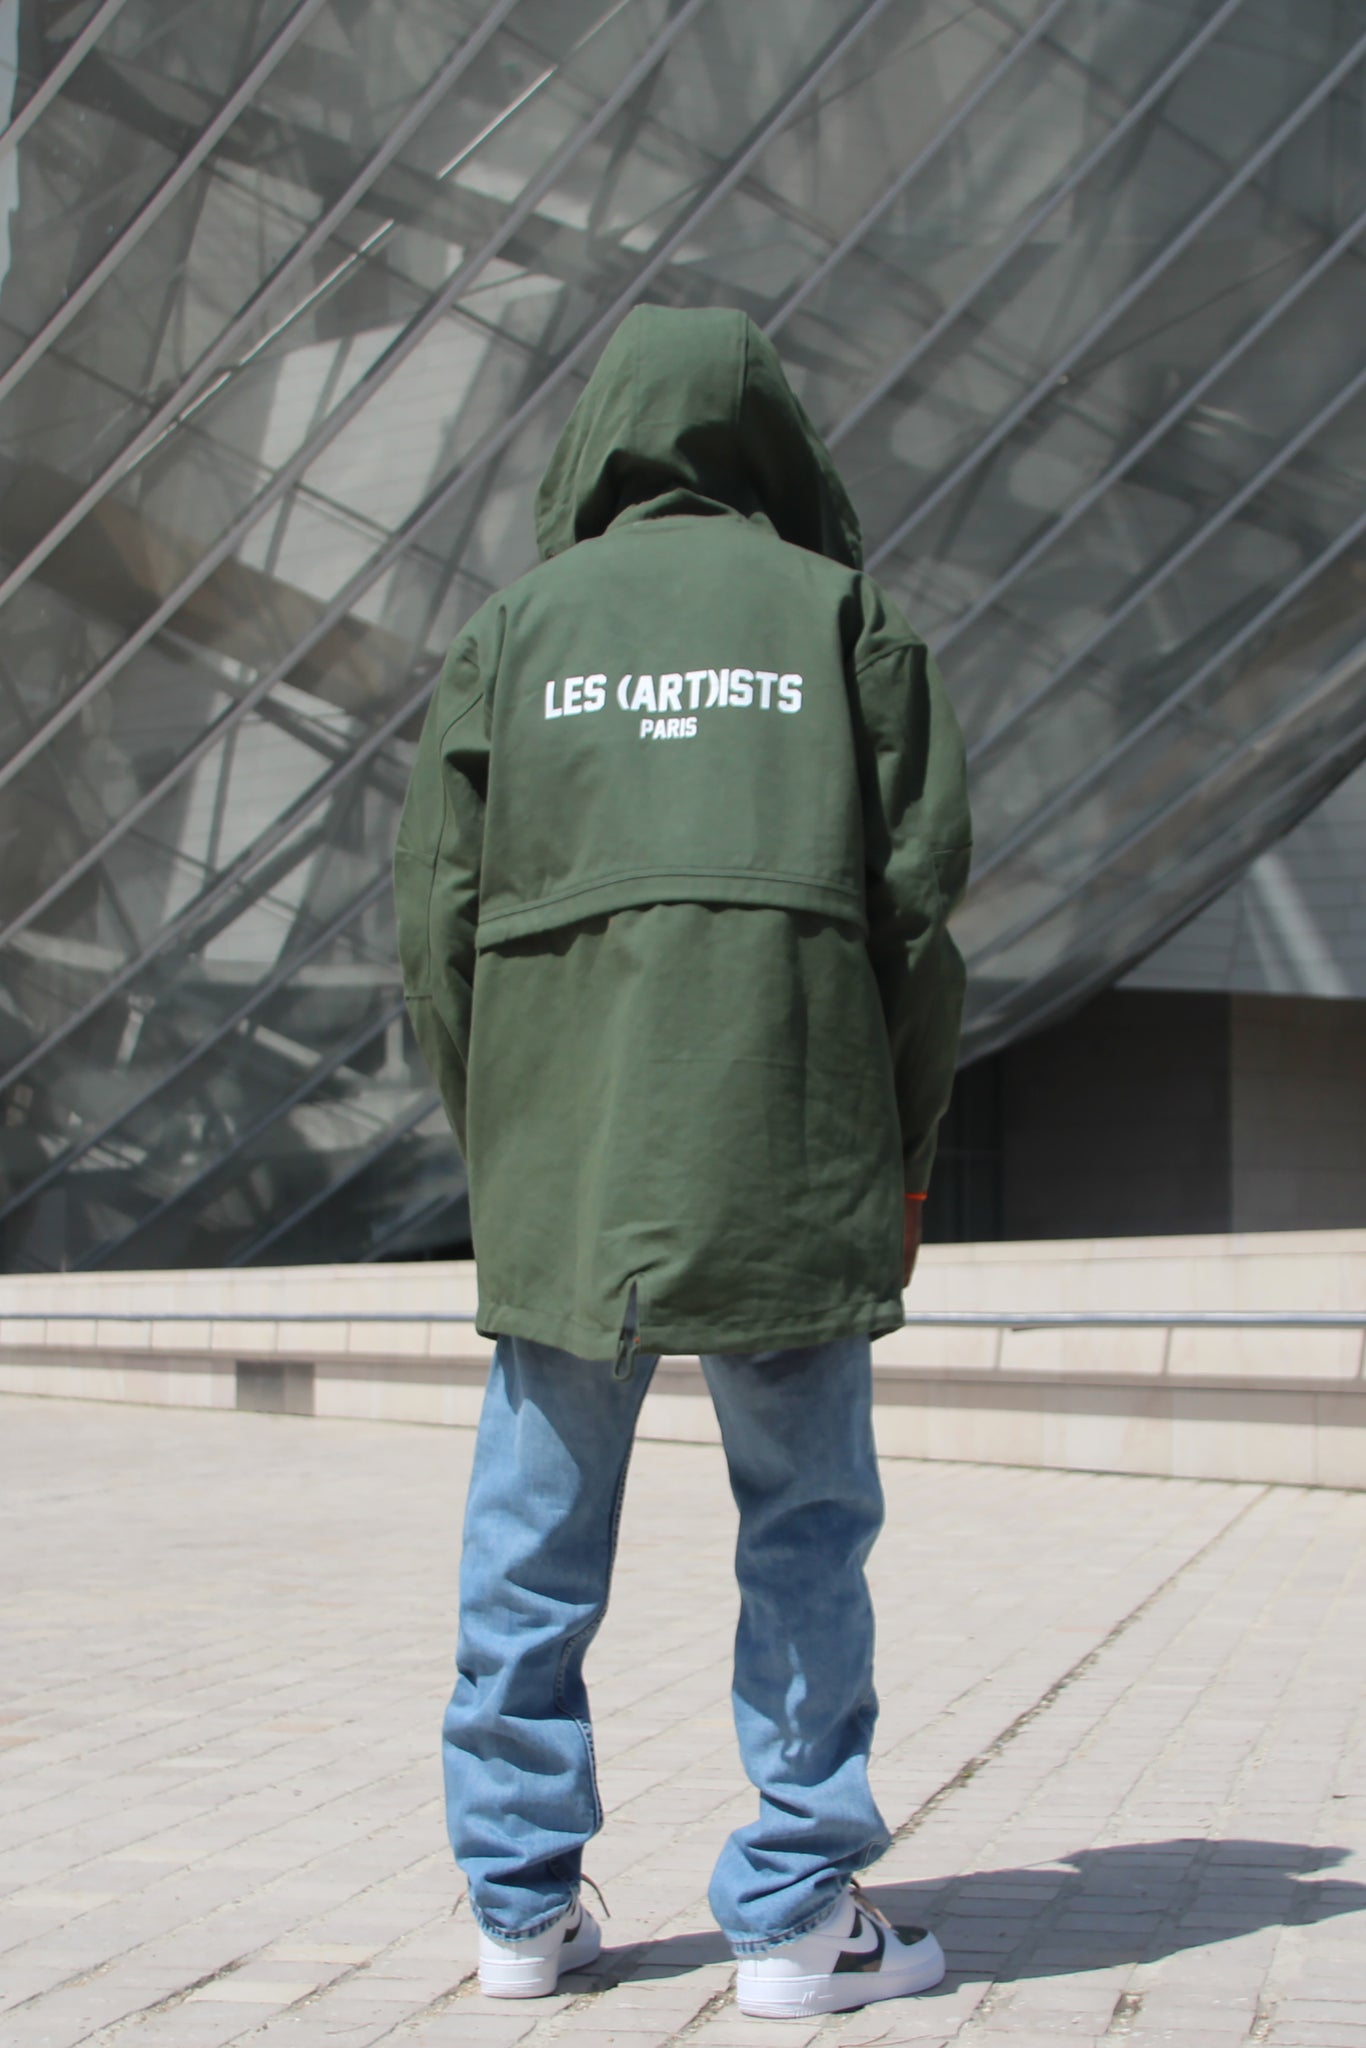 LES (ART)ISTS CANVAS JACKETS